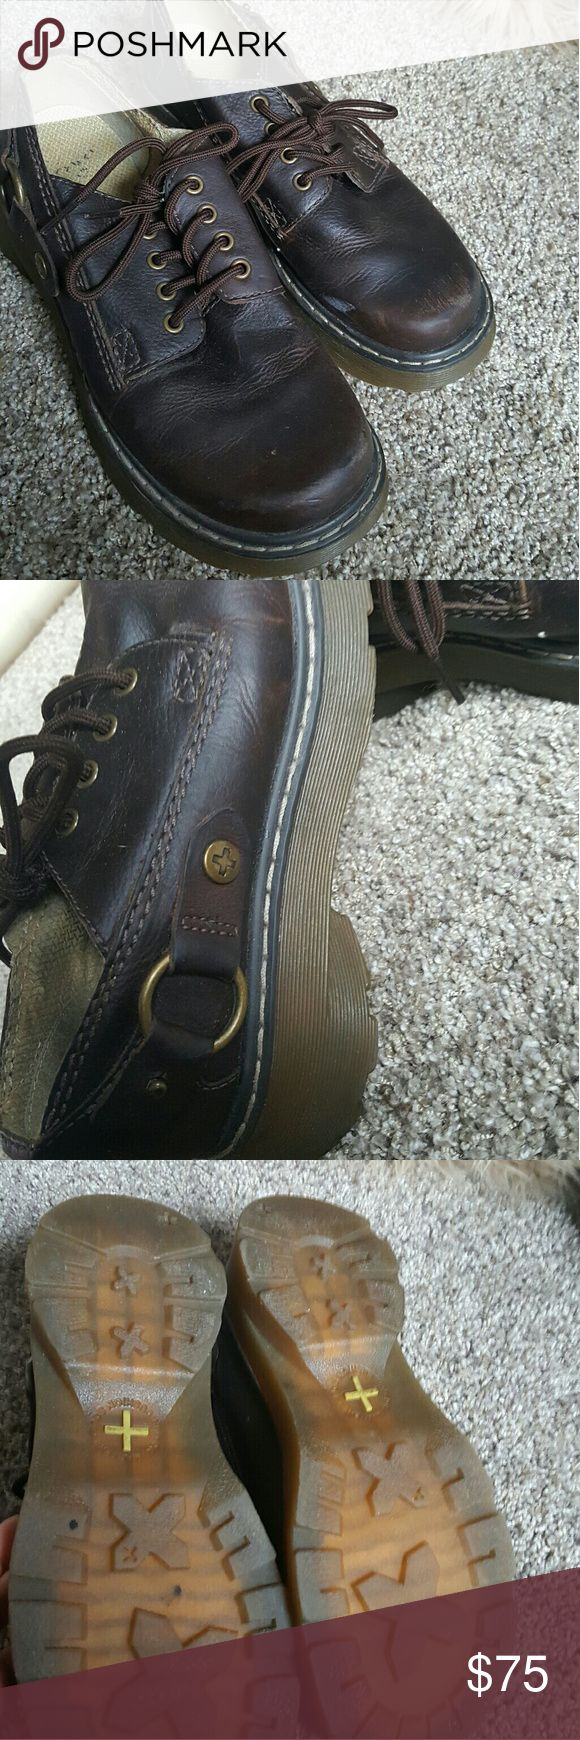 Dr. martens BIG SALE MARKED DOWN TO $45 Brown leather doc martens worn look, but only worn 2 times...i bought the wrong size and they were to big....chunky heel Dr. Martens Shoes Heeled Boots